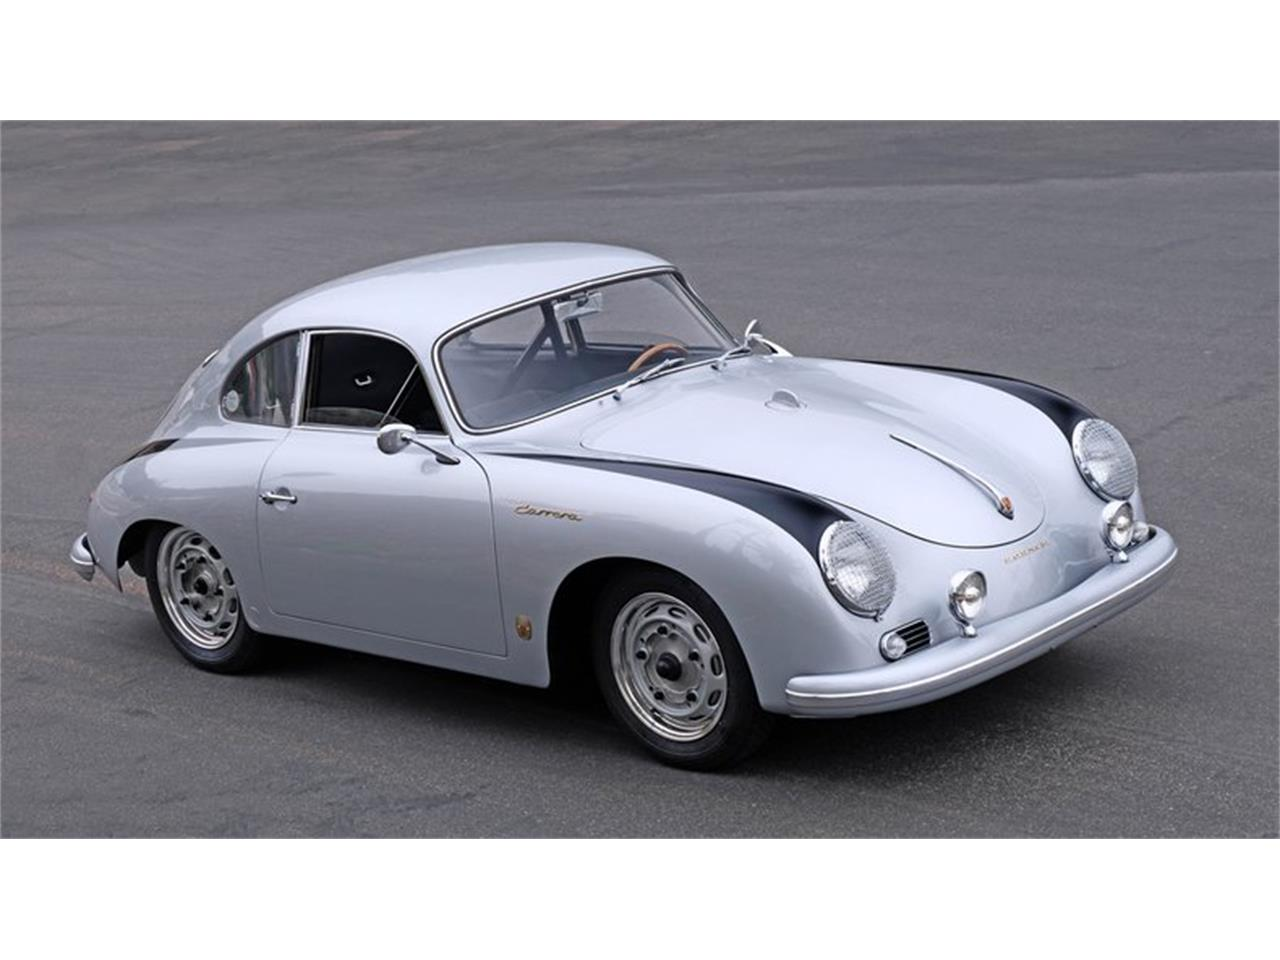 Large Picture of 1957 Porsche 356 located in San Diego California Auction Vehicle Offered by Symbolic International - Q2HJ